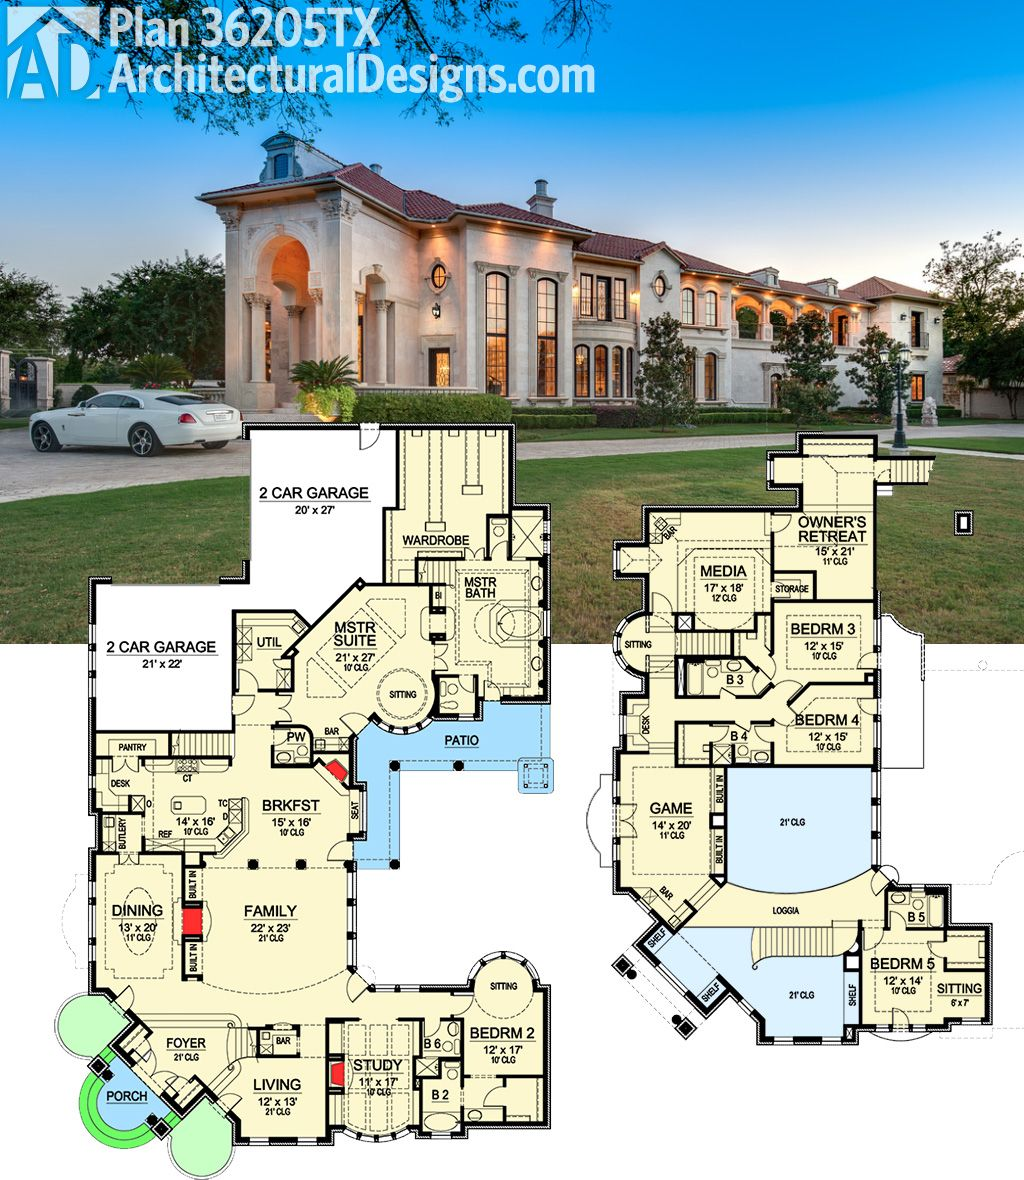 Plan 36205TX: Two-Story Master Retreat | Luxury houses, Luxury and on 1250 sq ft house, 8500 sq ft house, 2000 sq ft house, 200 sq ft house, 400 sq ft house, 600 sq ft house, 900 sq ft house, 5000 sq ft house, 2500 sq ft house, 1750 sq ft house, 3000 sq ft house, 250 sq ft house, 100 sq ft house, 10000 sq ft house, 1000 sq ft house, 60000 sq ft house, 50000 sq ft house, 8000 sq ft house, 500 sq ft house, 1200 sq ft house,